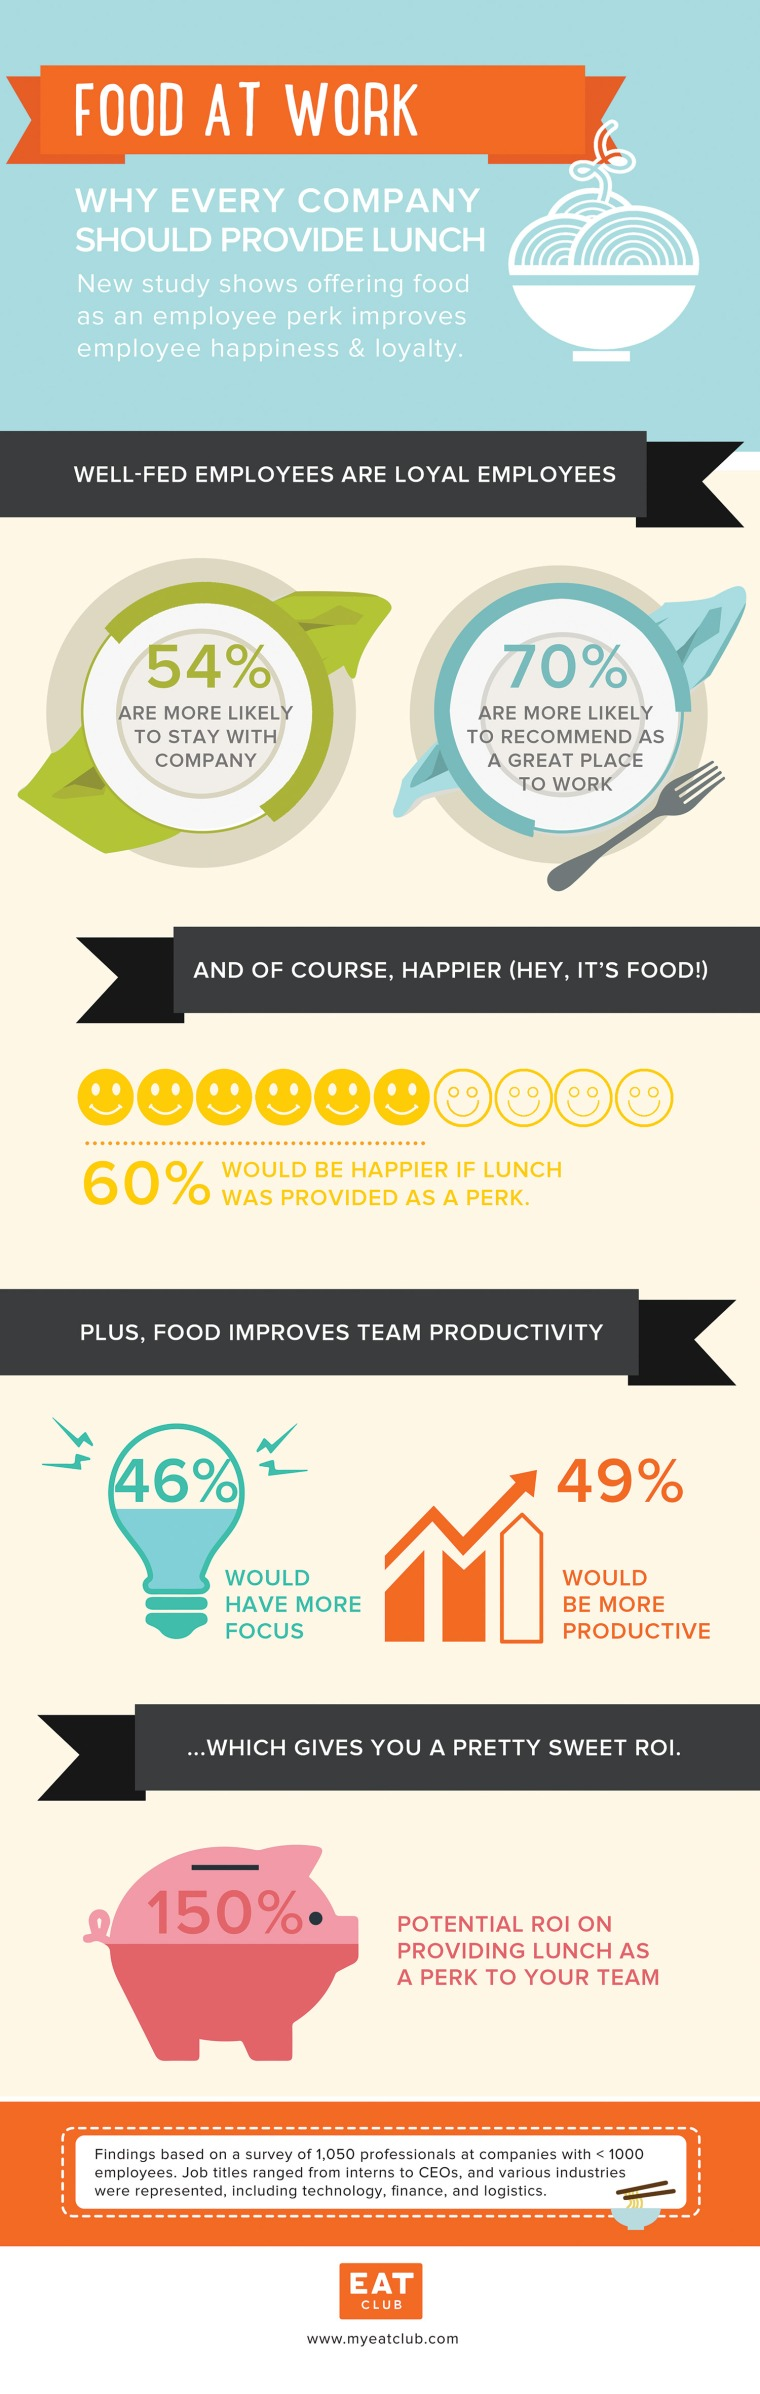 Does it Pay to Feed Employees? An infographic by EAT Club showing providing food increases loyalty, employee happiness, productivity, and delivers great ROI.